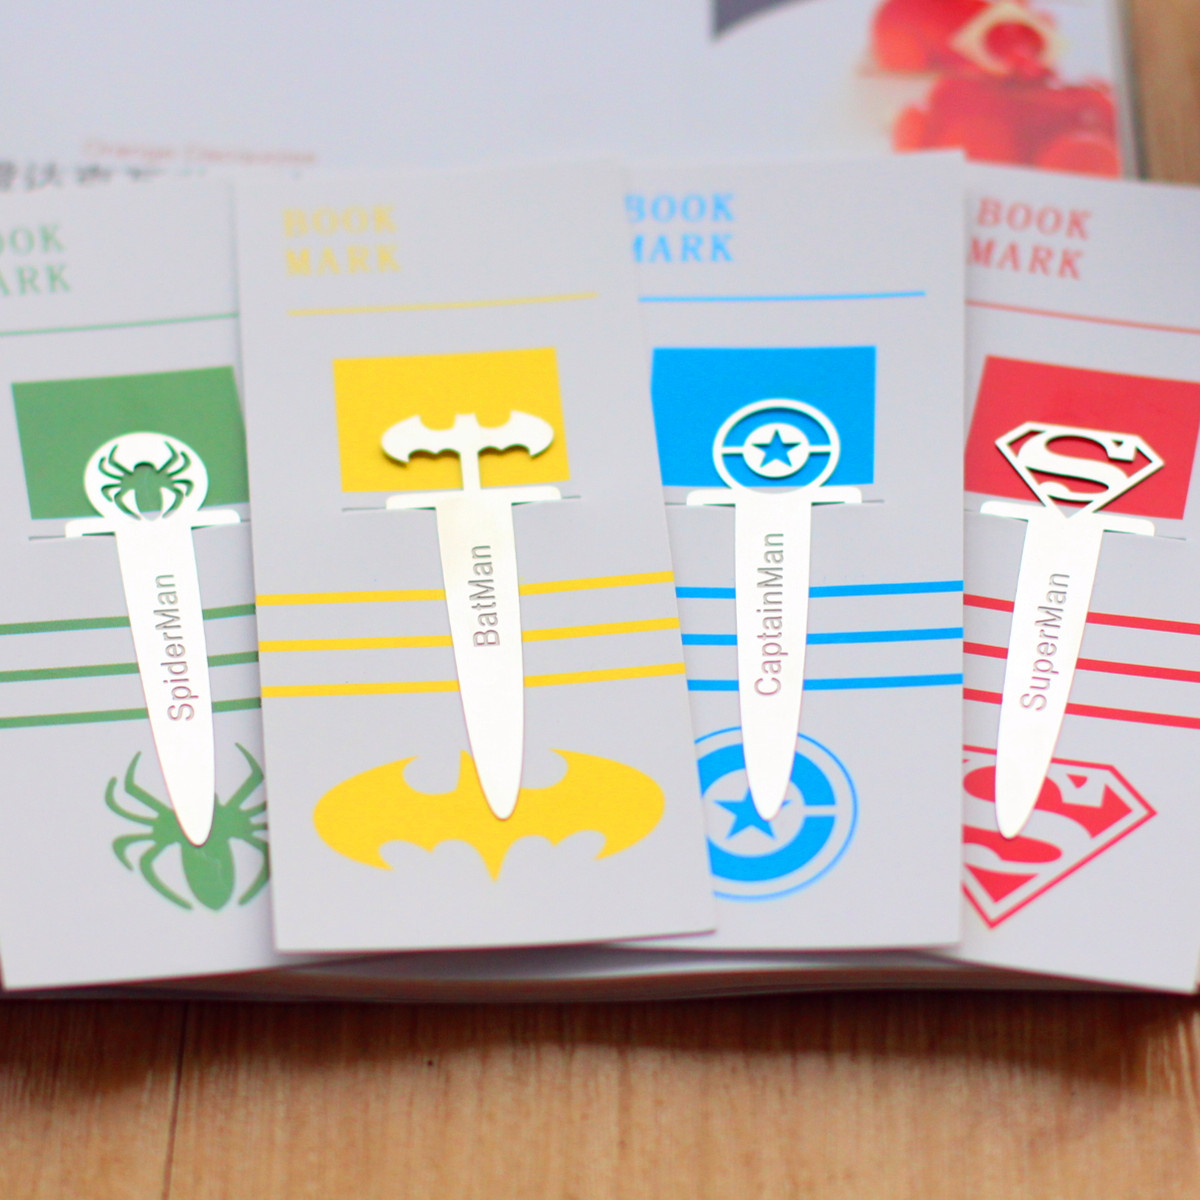 1pcs Metal Bookmark Cartoon Superhero League Book Holder Bookmarks For Books Stationery School Office Supply Escolar Papelaria